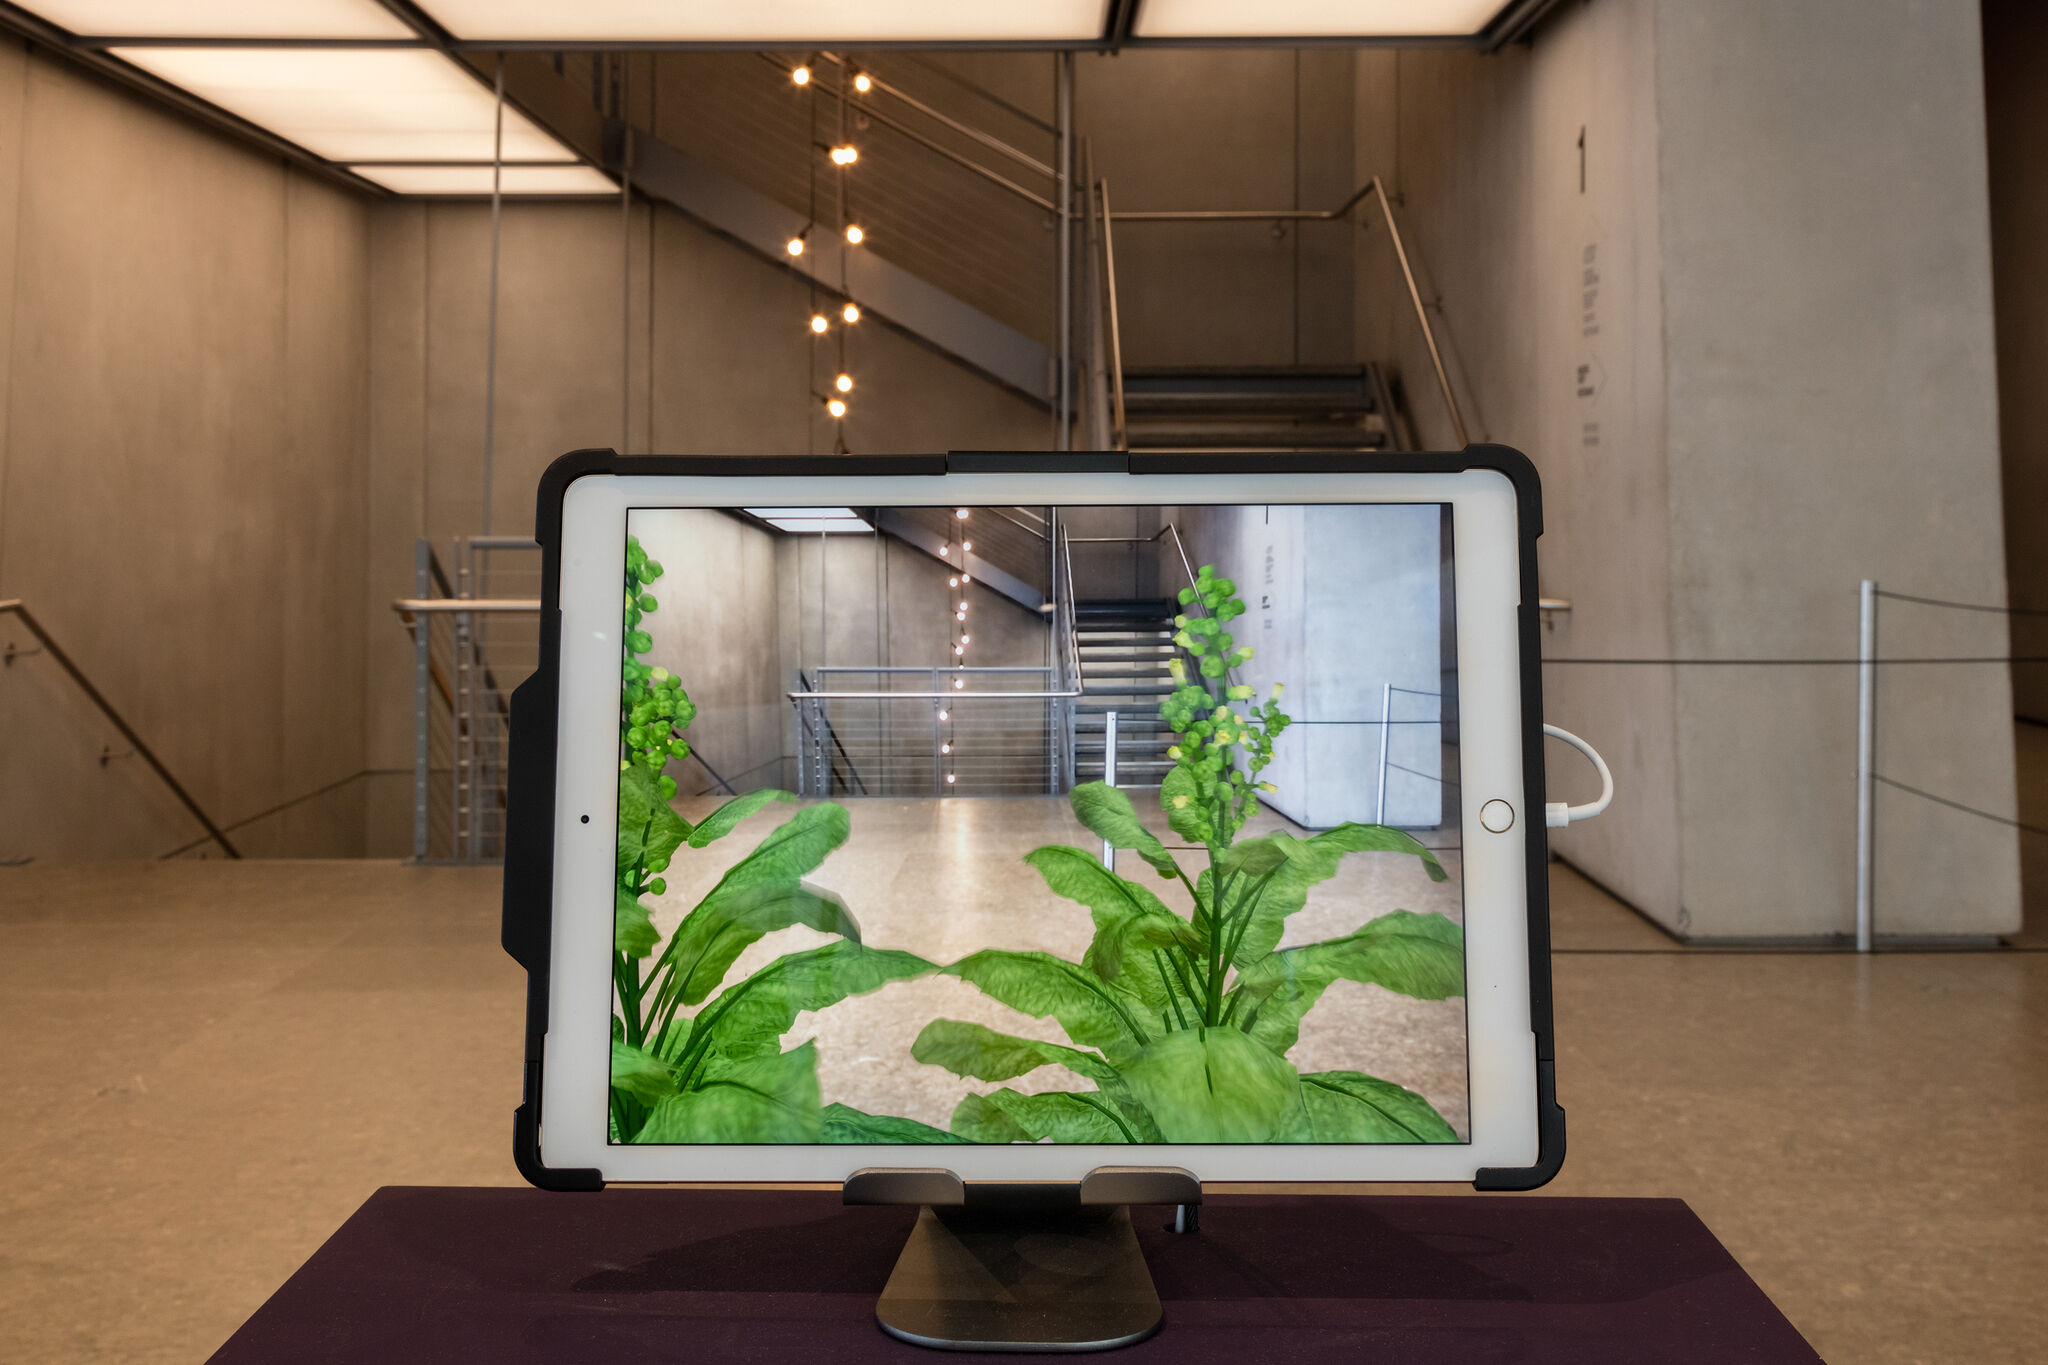 A tablet with an augmented reality app displaying a view of the Whitney's lobby with tobacco plants.